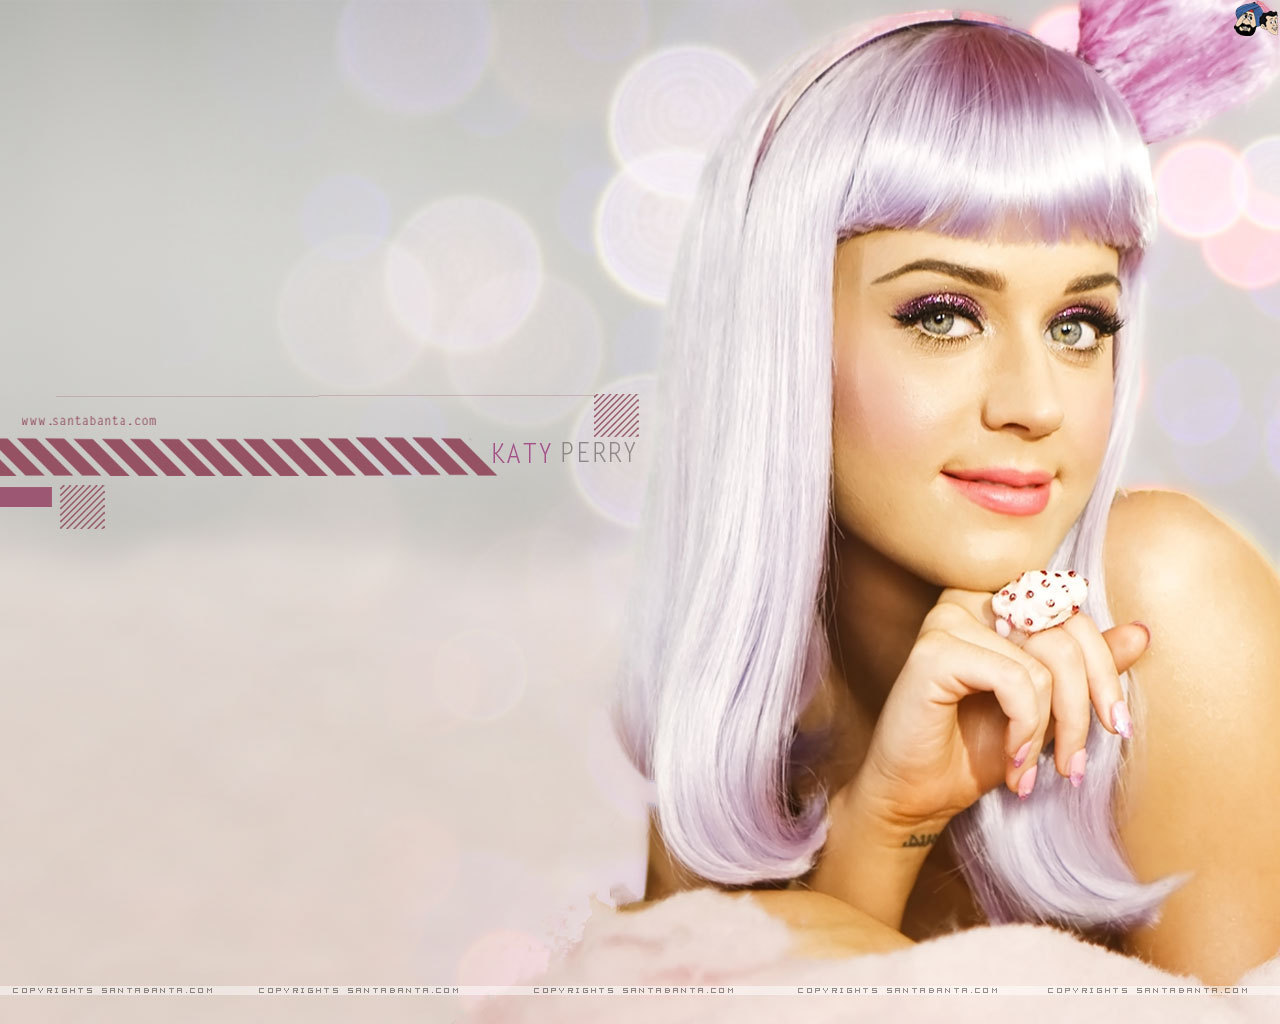 katy - katy perry wallpaper (14651248) - fanpop